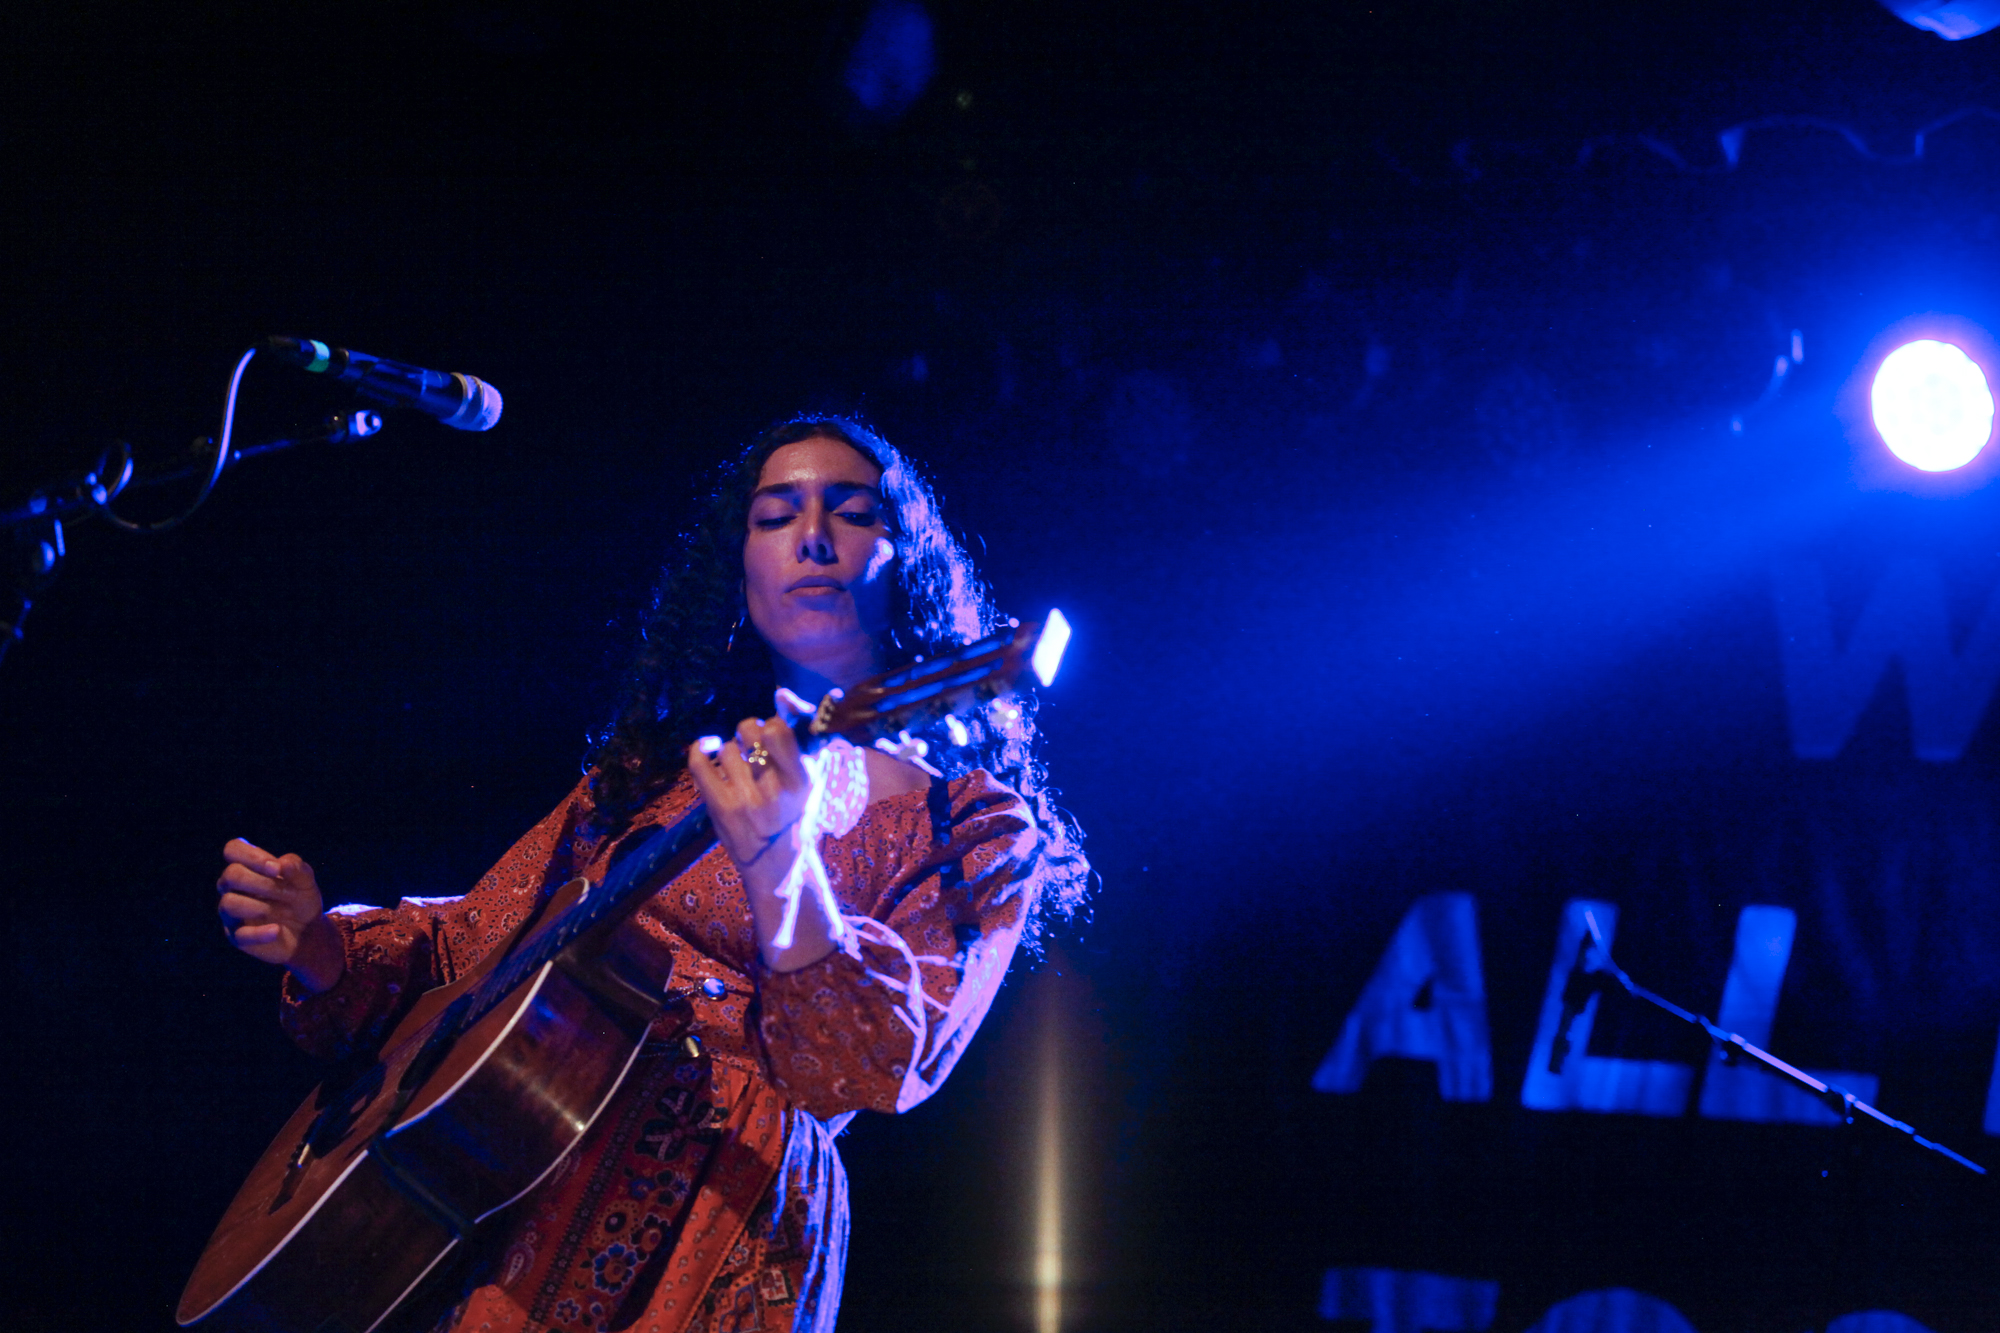 Bedouine plays at Warsaw in Greenpoint, Brooklyn, New York on April 13, 2018. (© Michael Katzif - Do not use or republish without prior consent.)